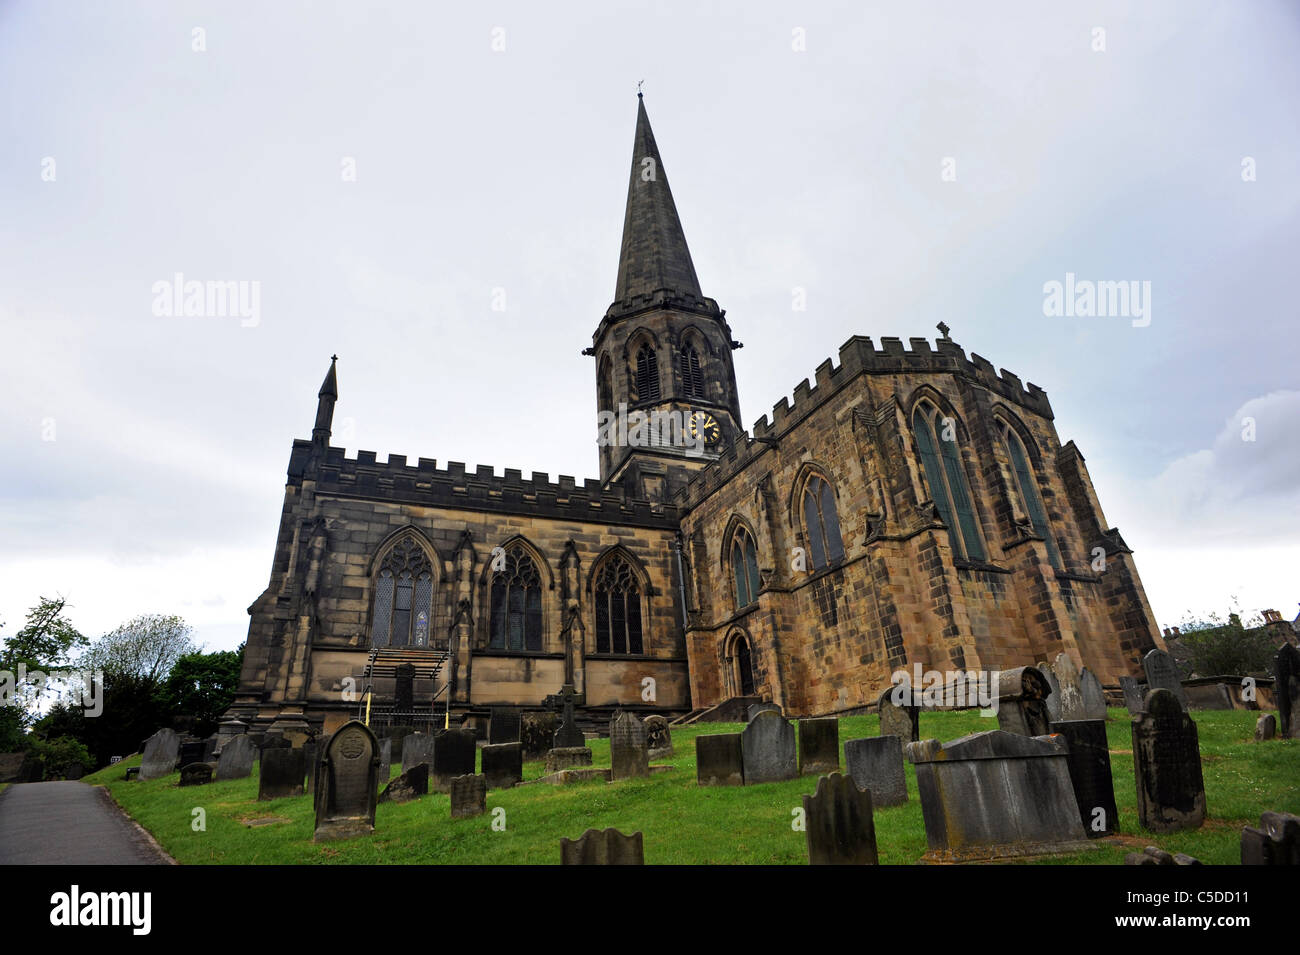 All Saints Parish Church in Bakewell - Stock Image